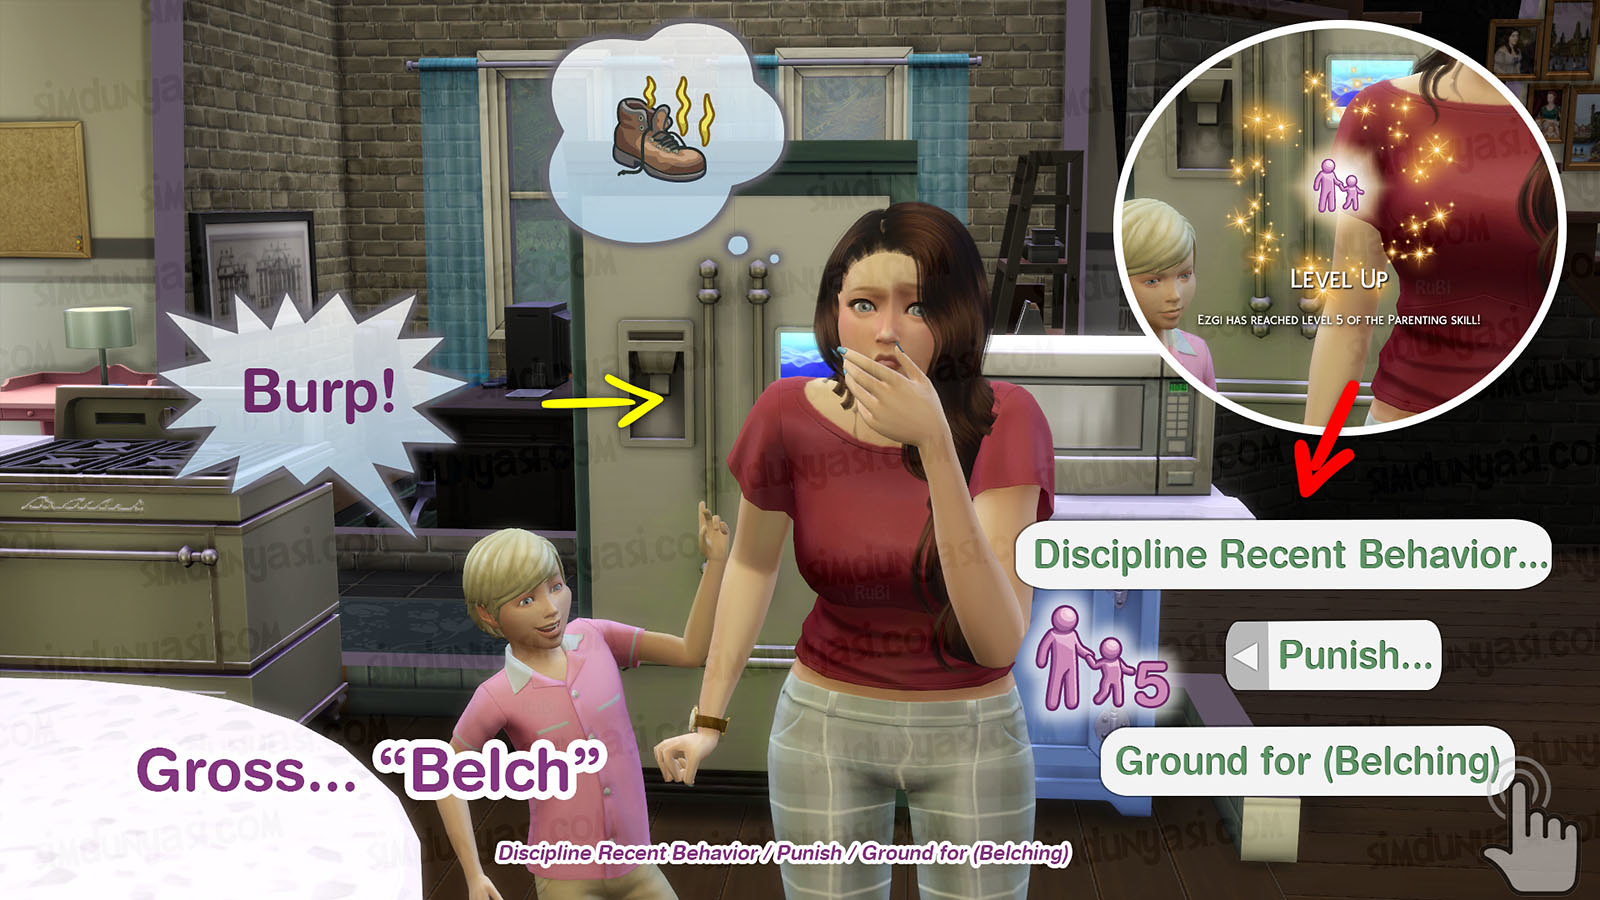 The Sims 4 Parenthood Ebeveynlik Paketi Grounding for Belch